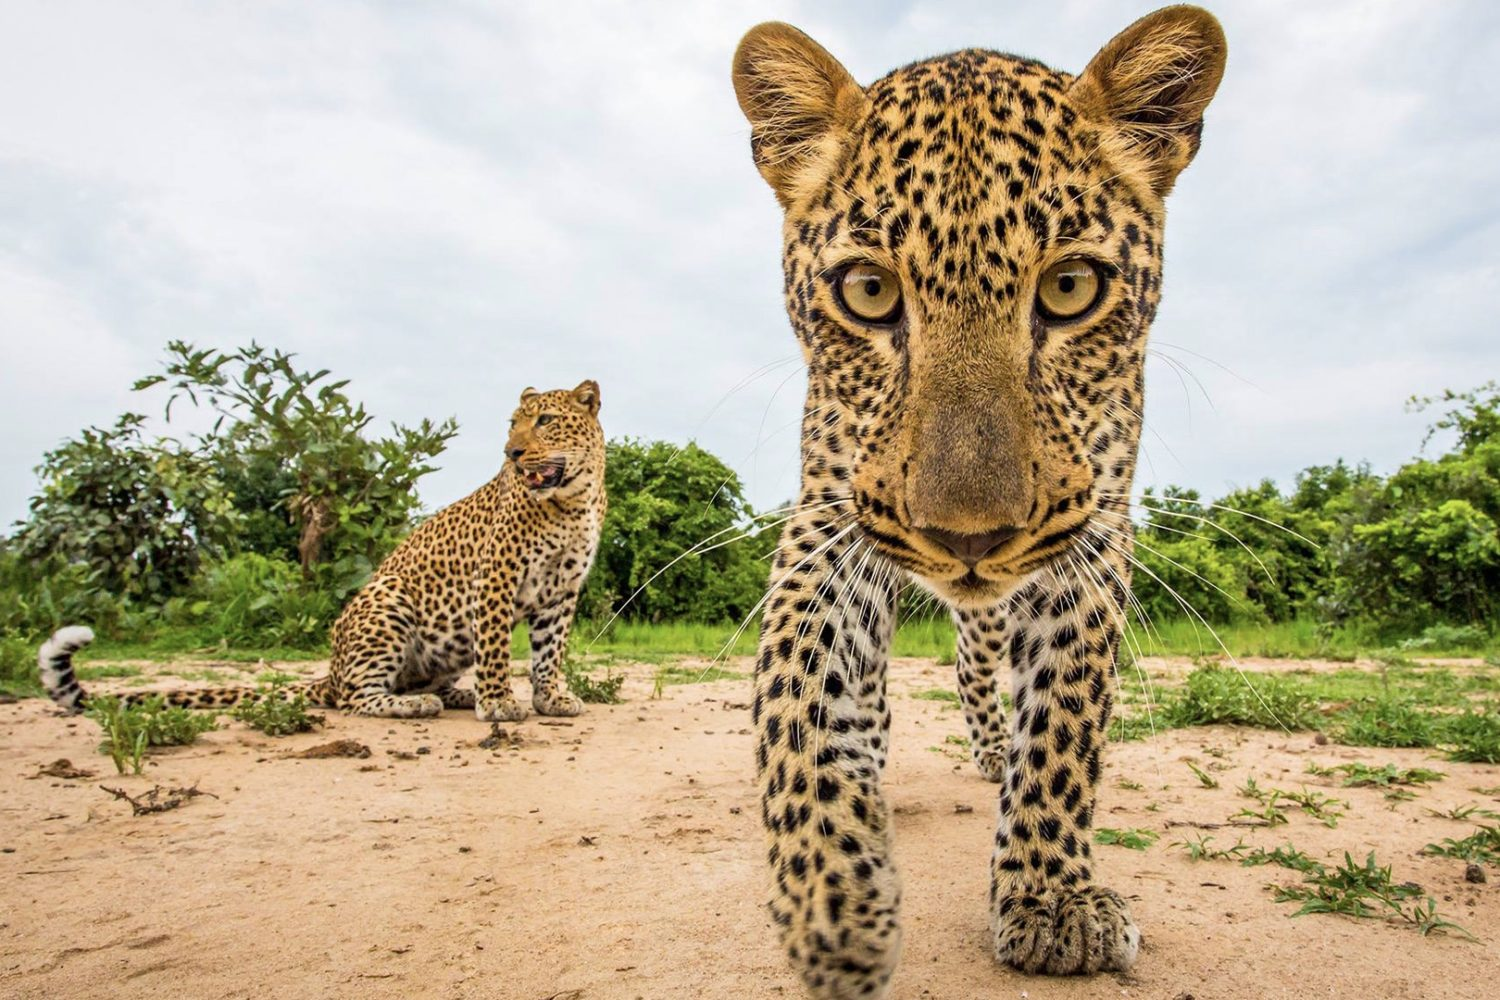 20 wildlife photos that show how beautiful the animal kingdom is